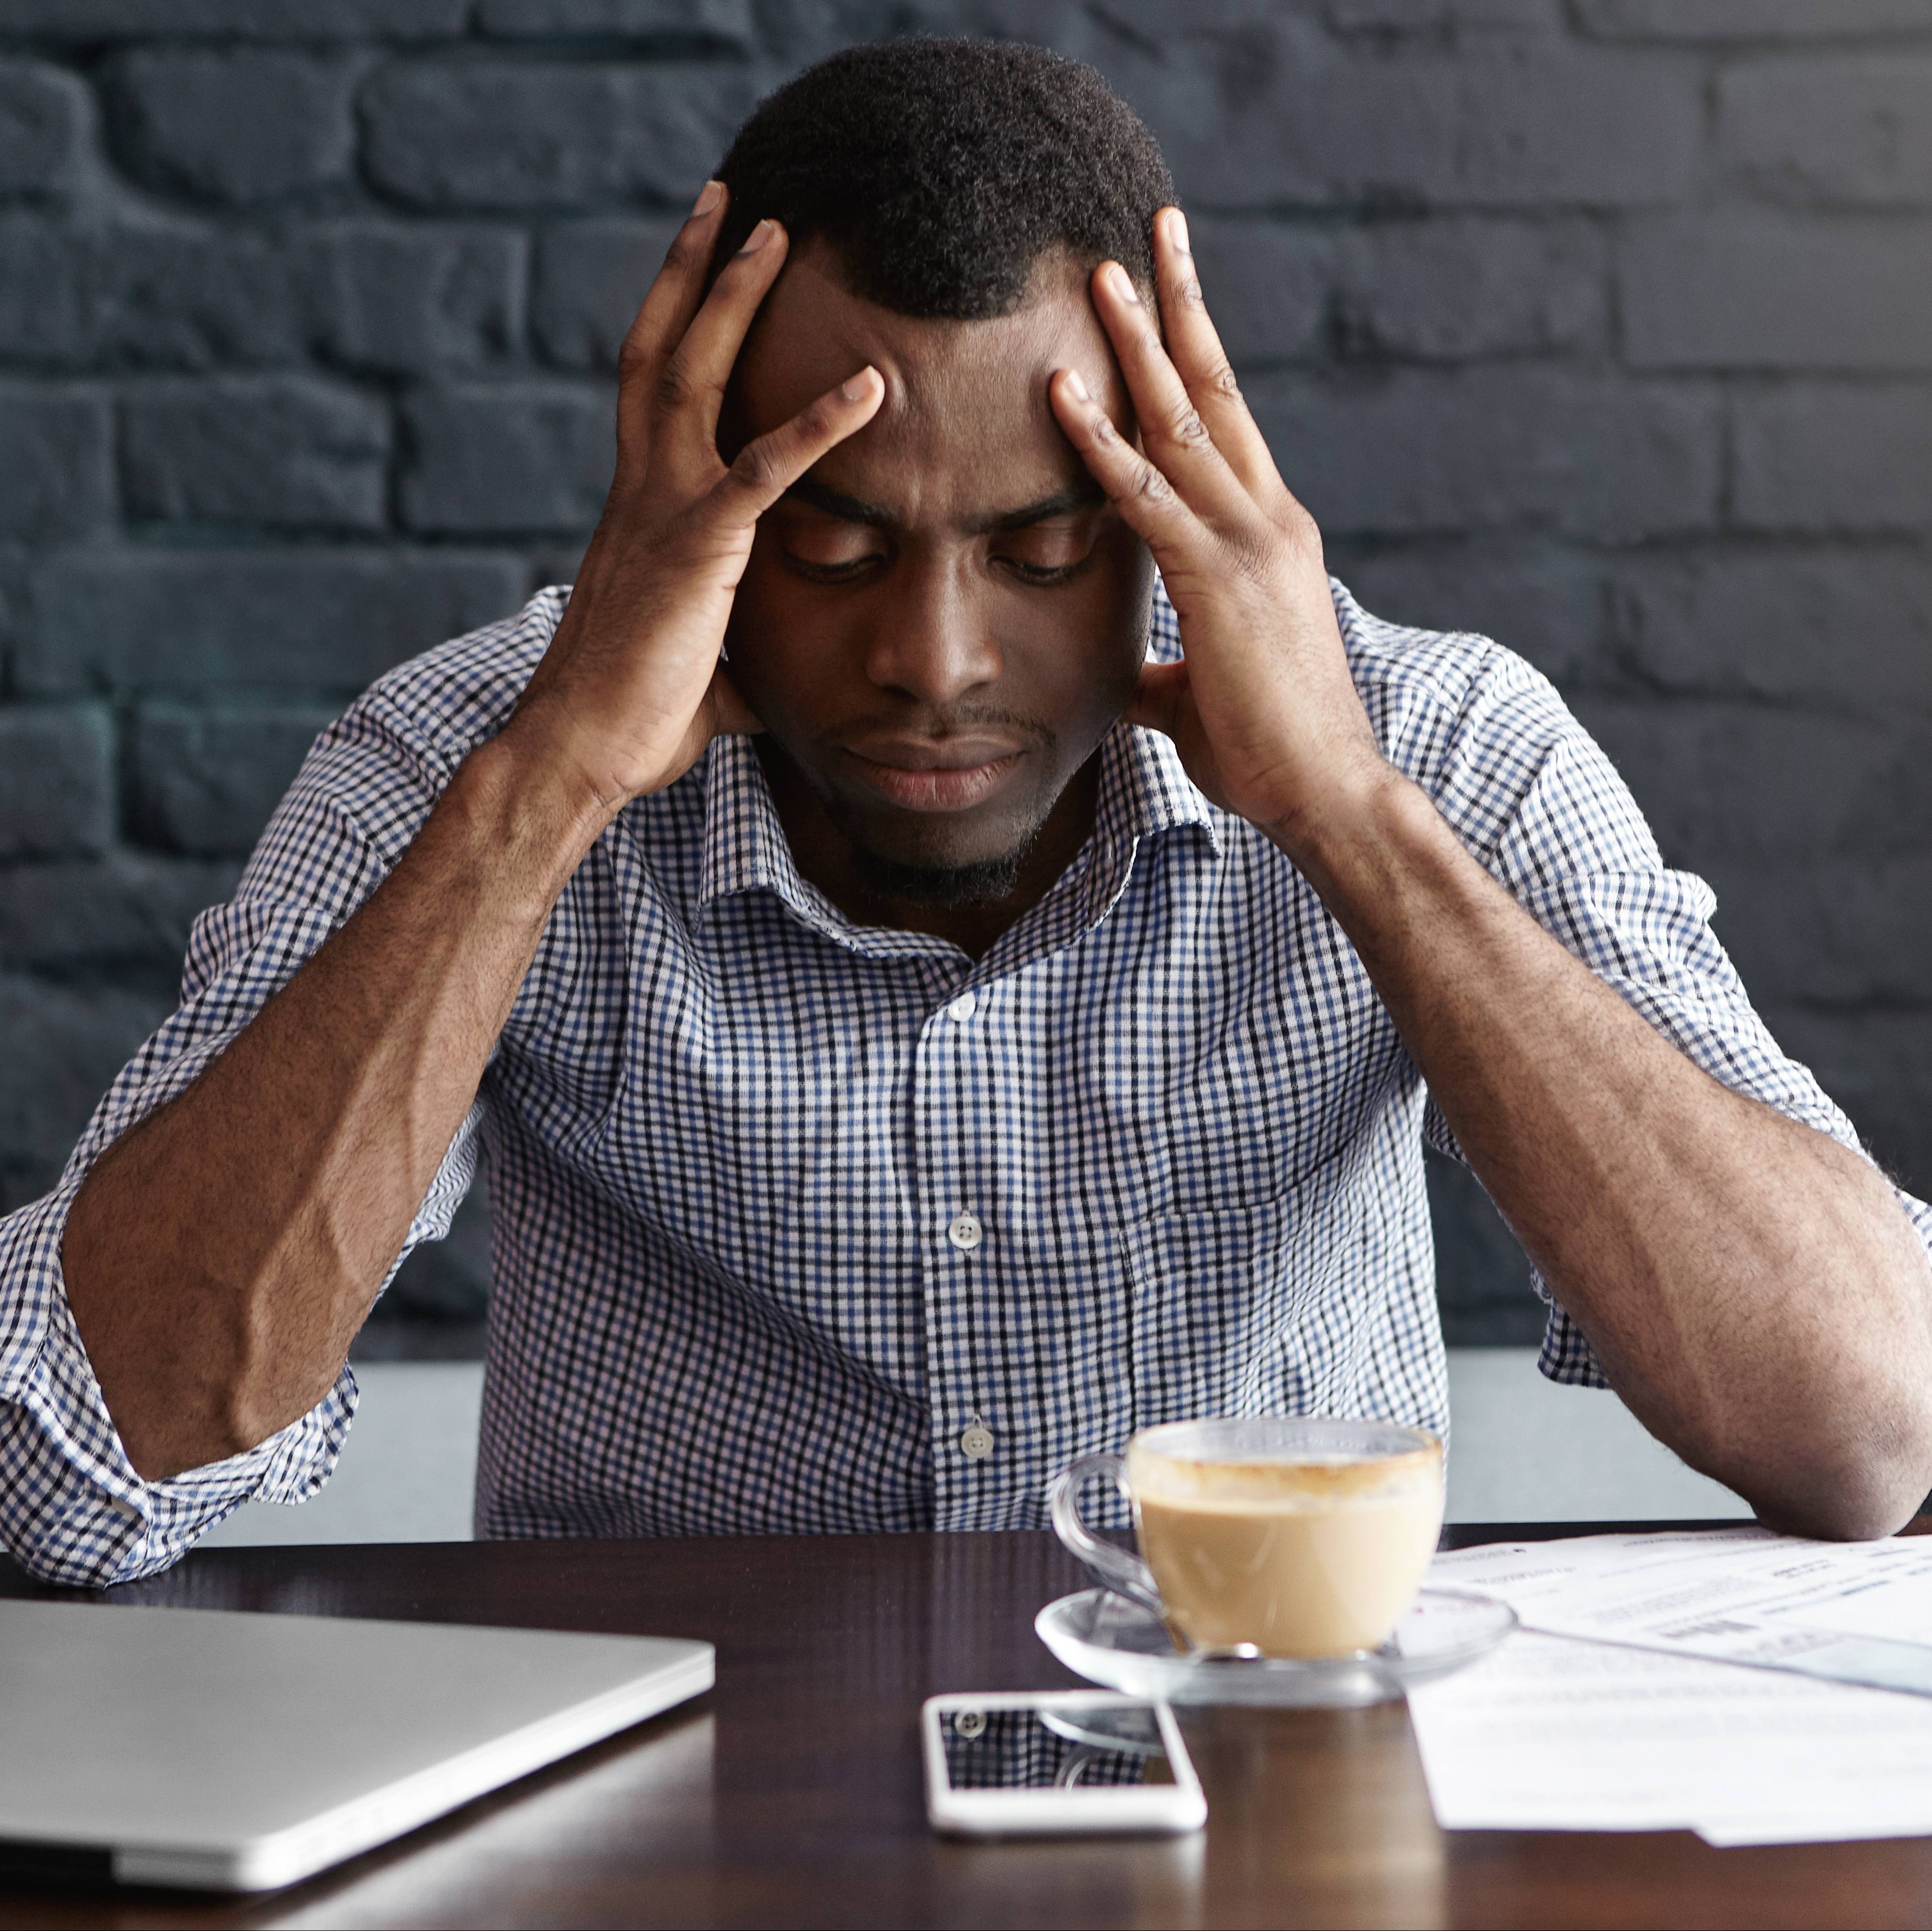 a young Black man sitting at table with a coffee and a computer, looking stressed, worried, sad and holding his head with his hands, struggling with perhaps a headache